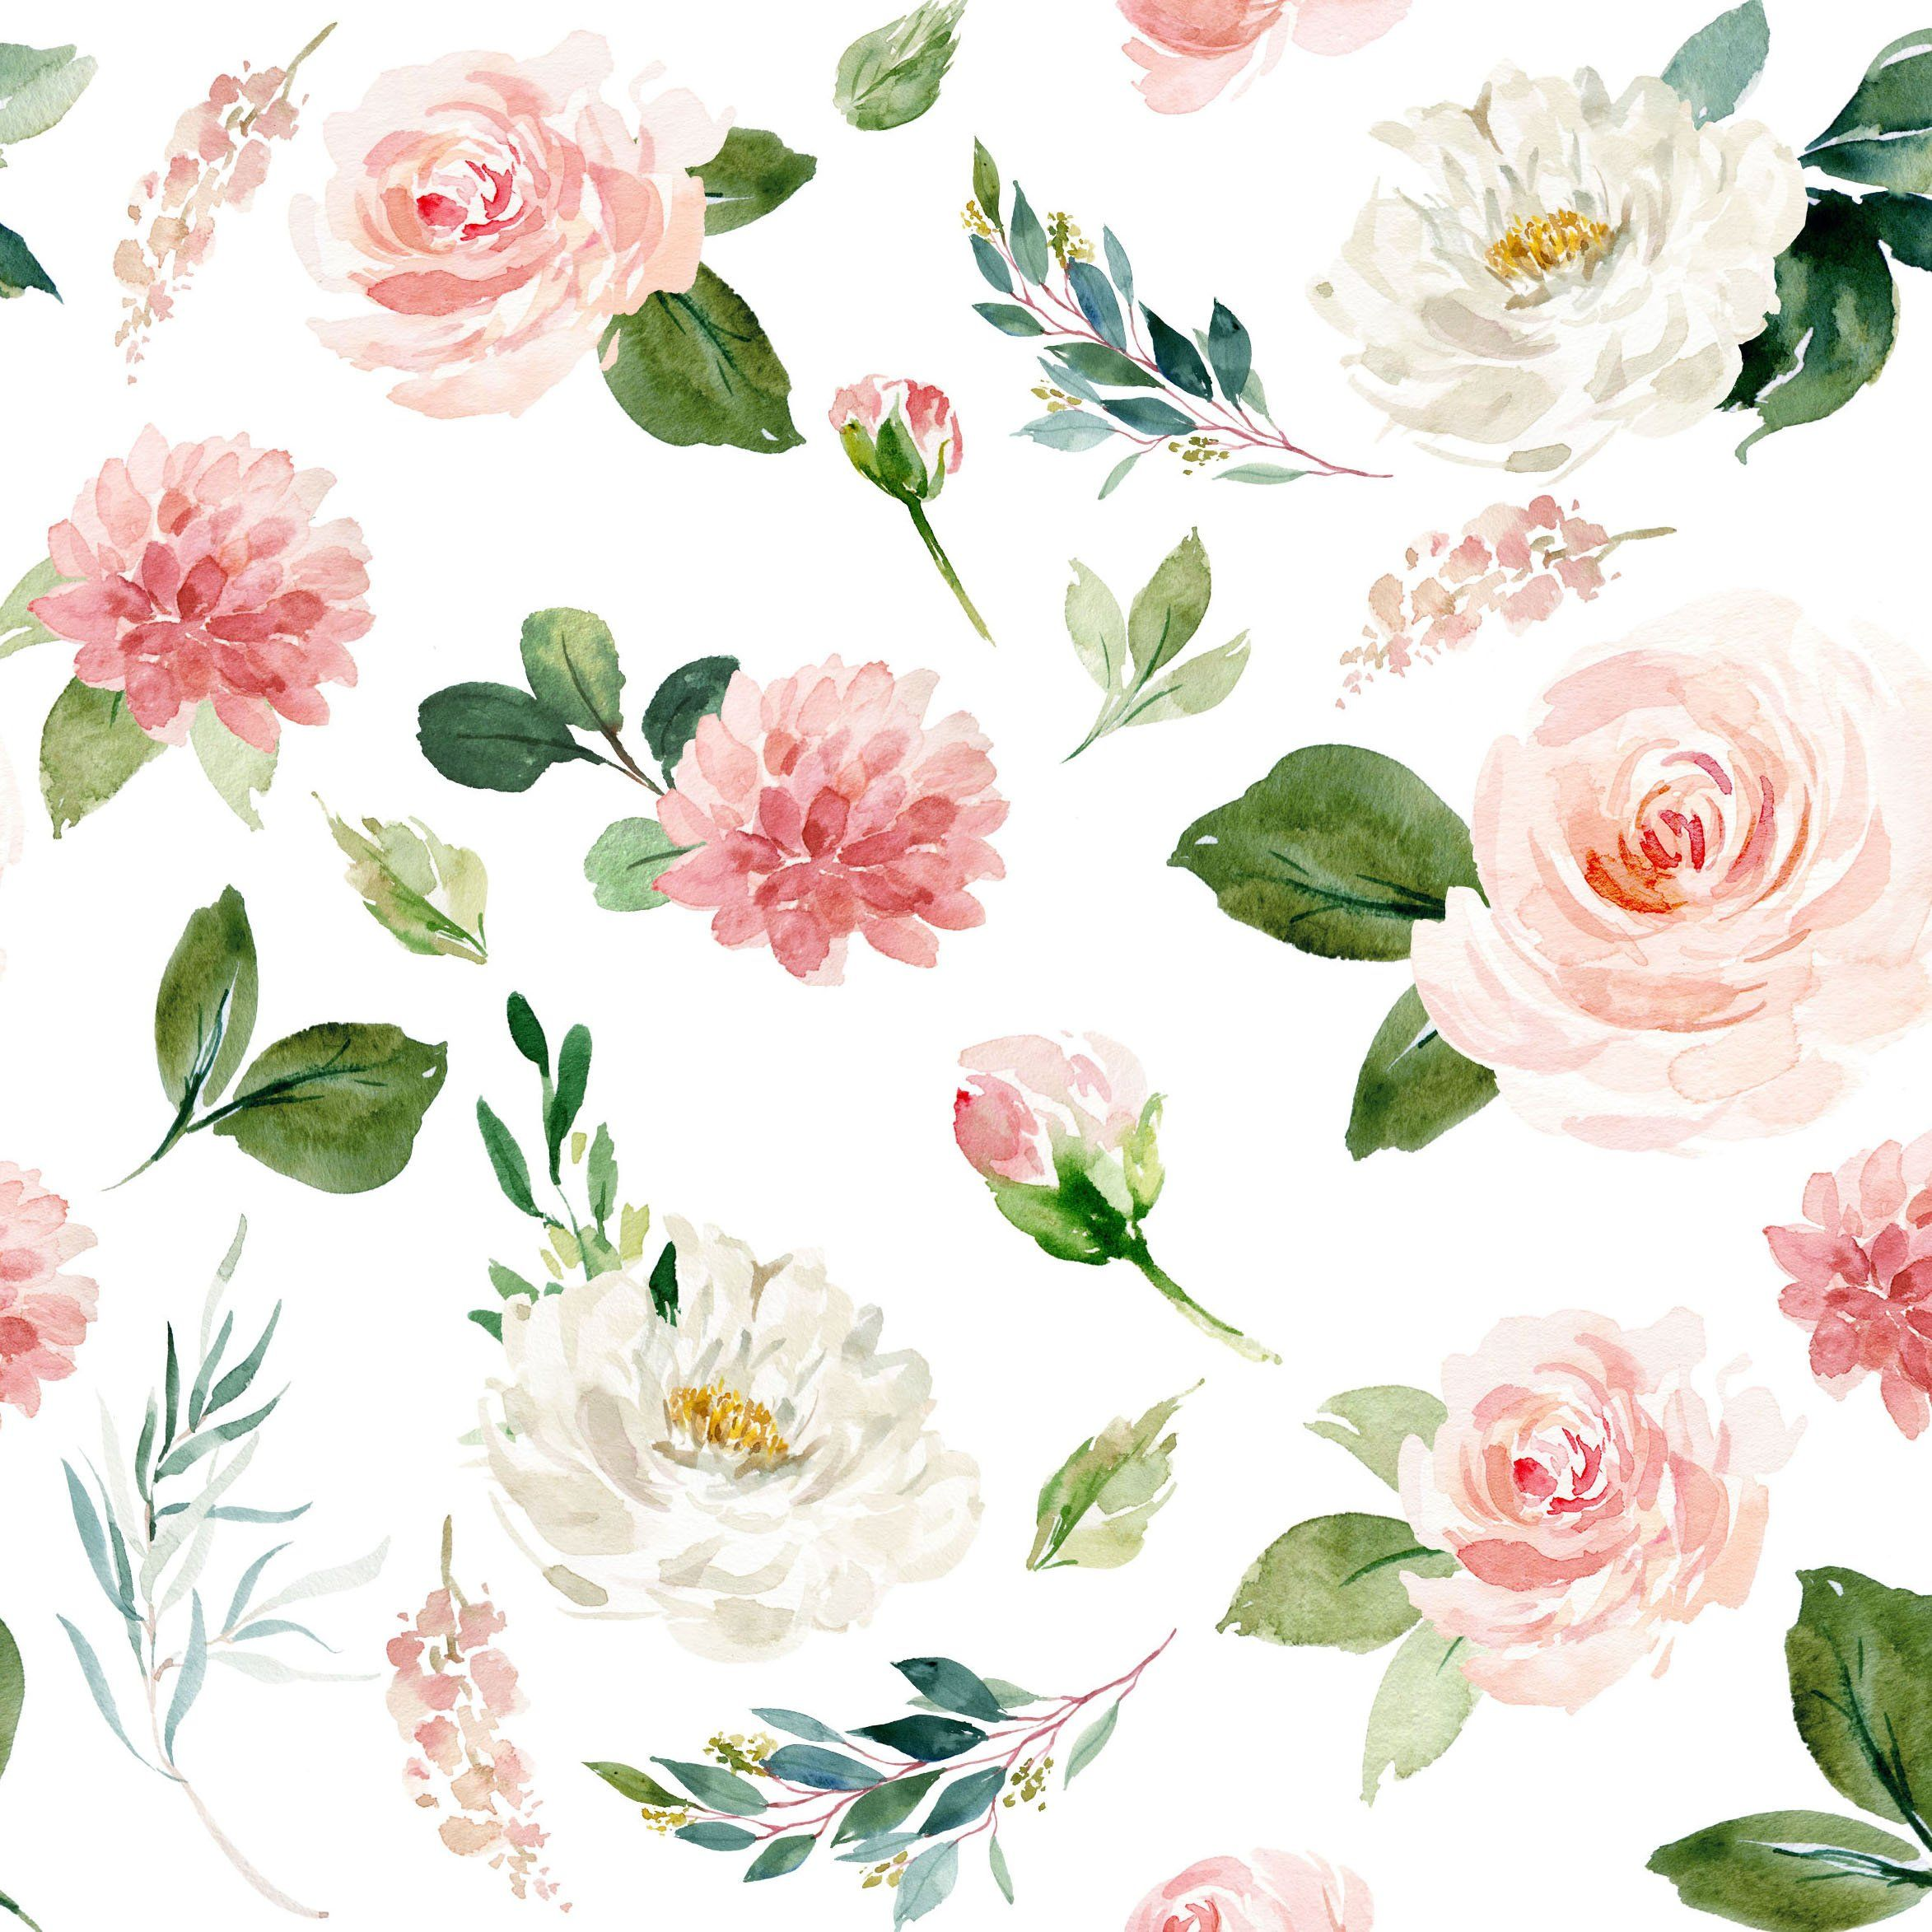 Boho Blush Florals Fabric By The Yard Quilting Cotton Organic